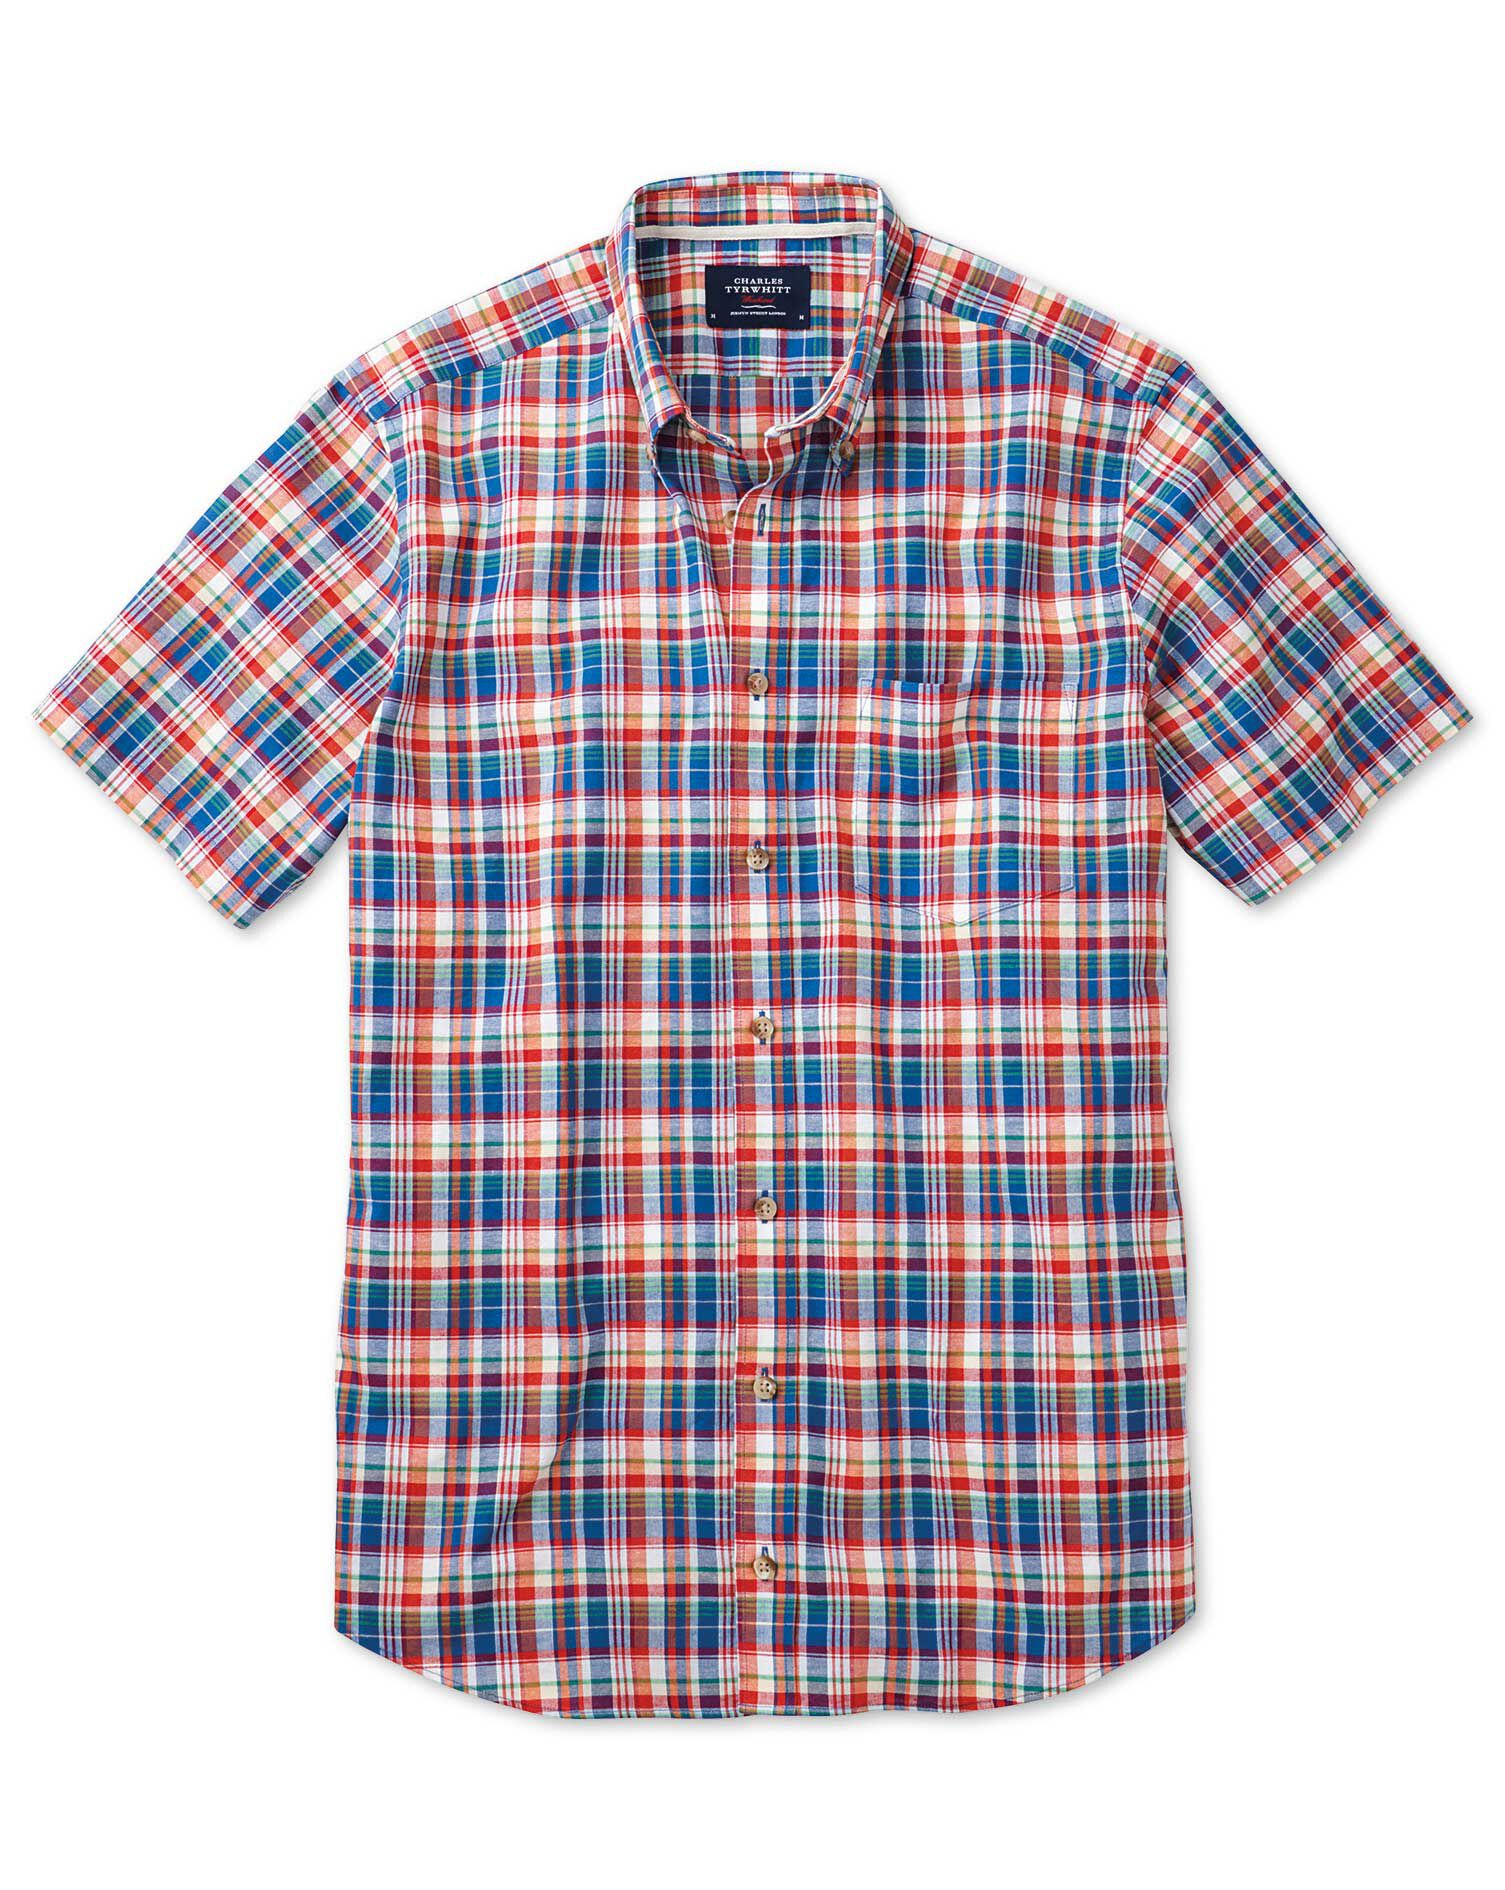 Classic Fit Short Sleeve Orange and Blue Check Cotton Shirt Single Cuff Size XXL by Charles Tyrwhitt